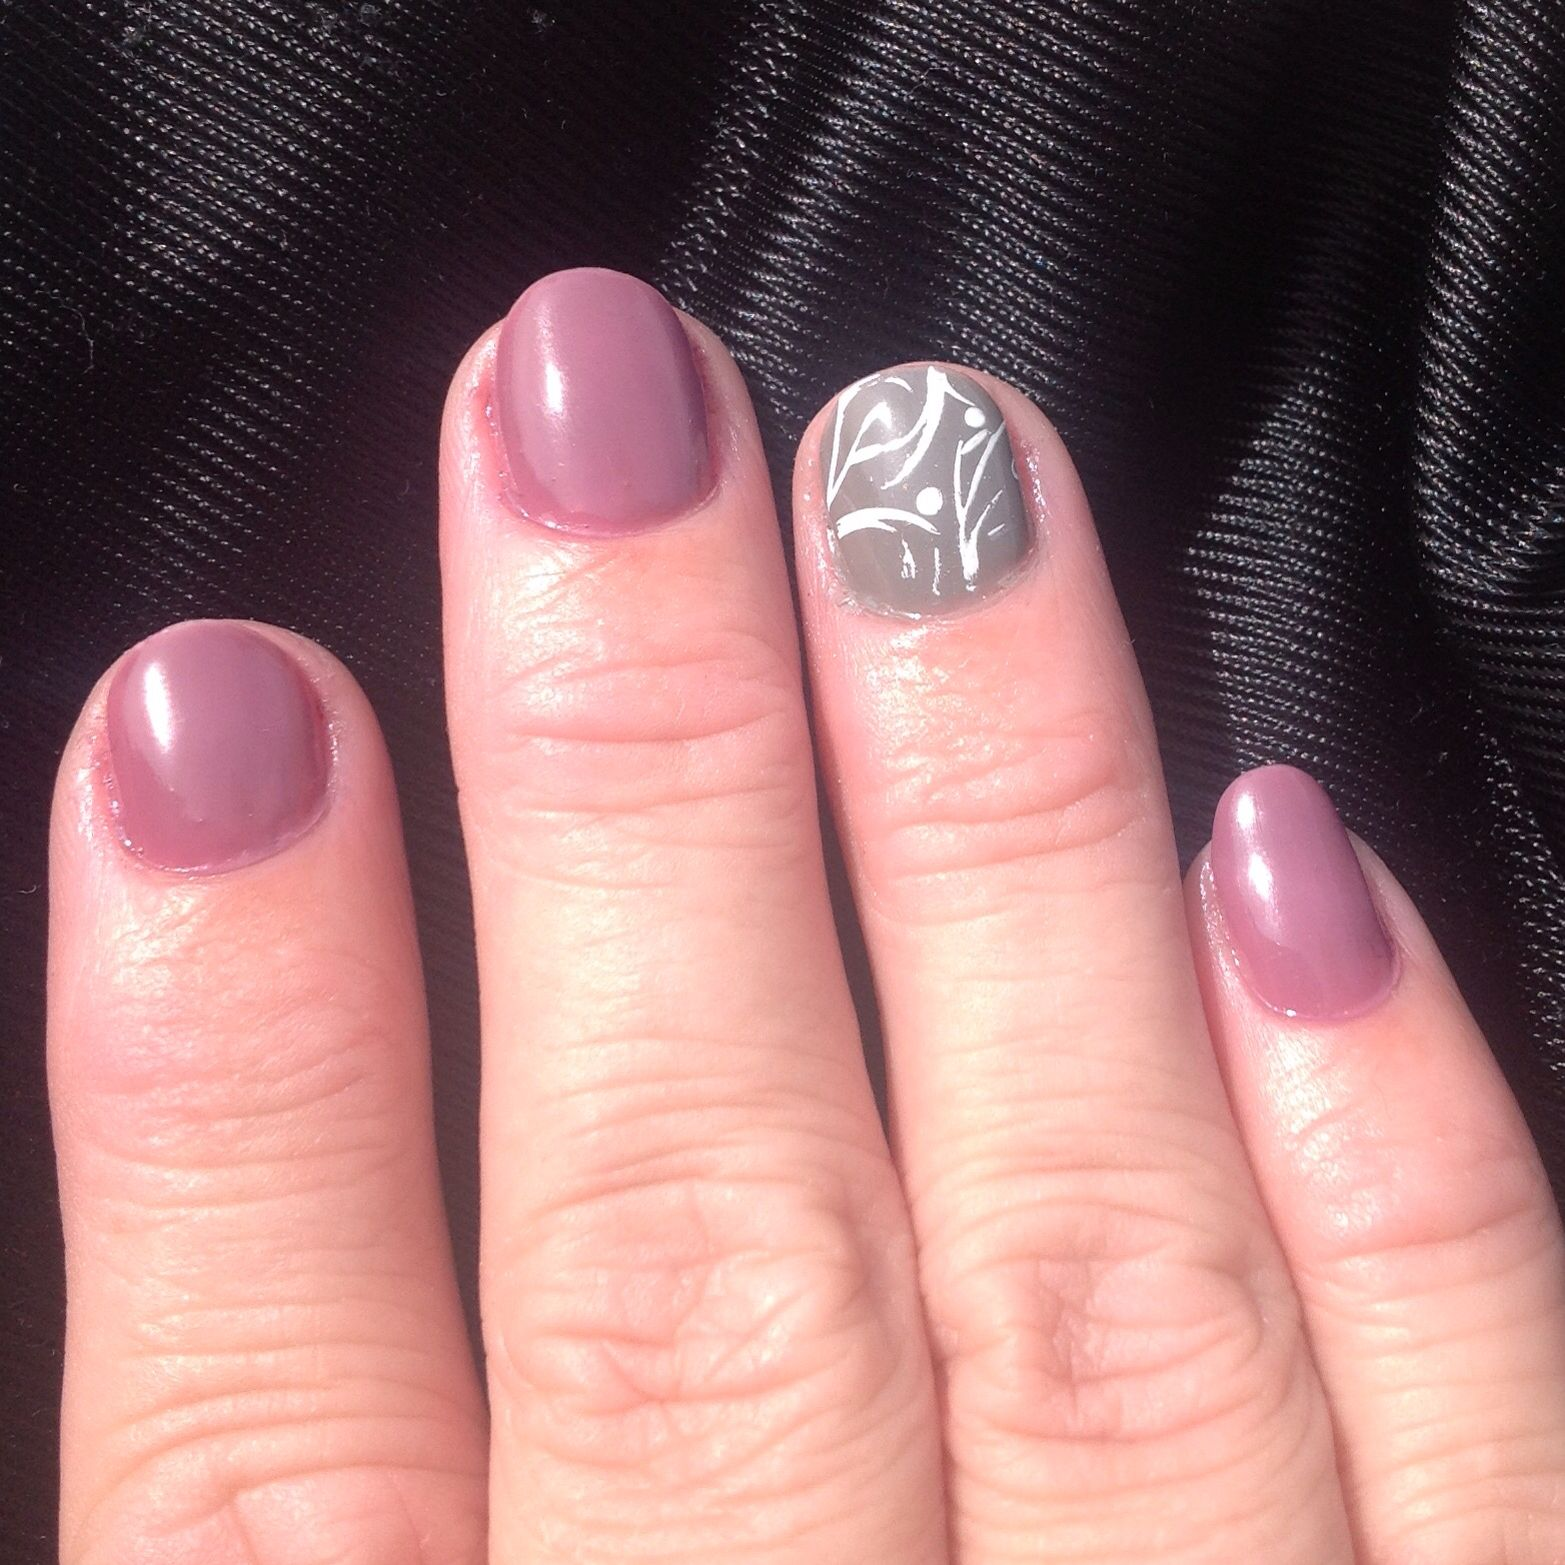 Great colors for fall! GelMoment Ballerina and Stroll in Paris.